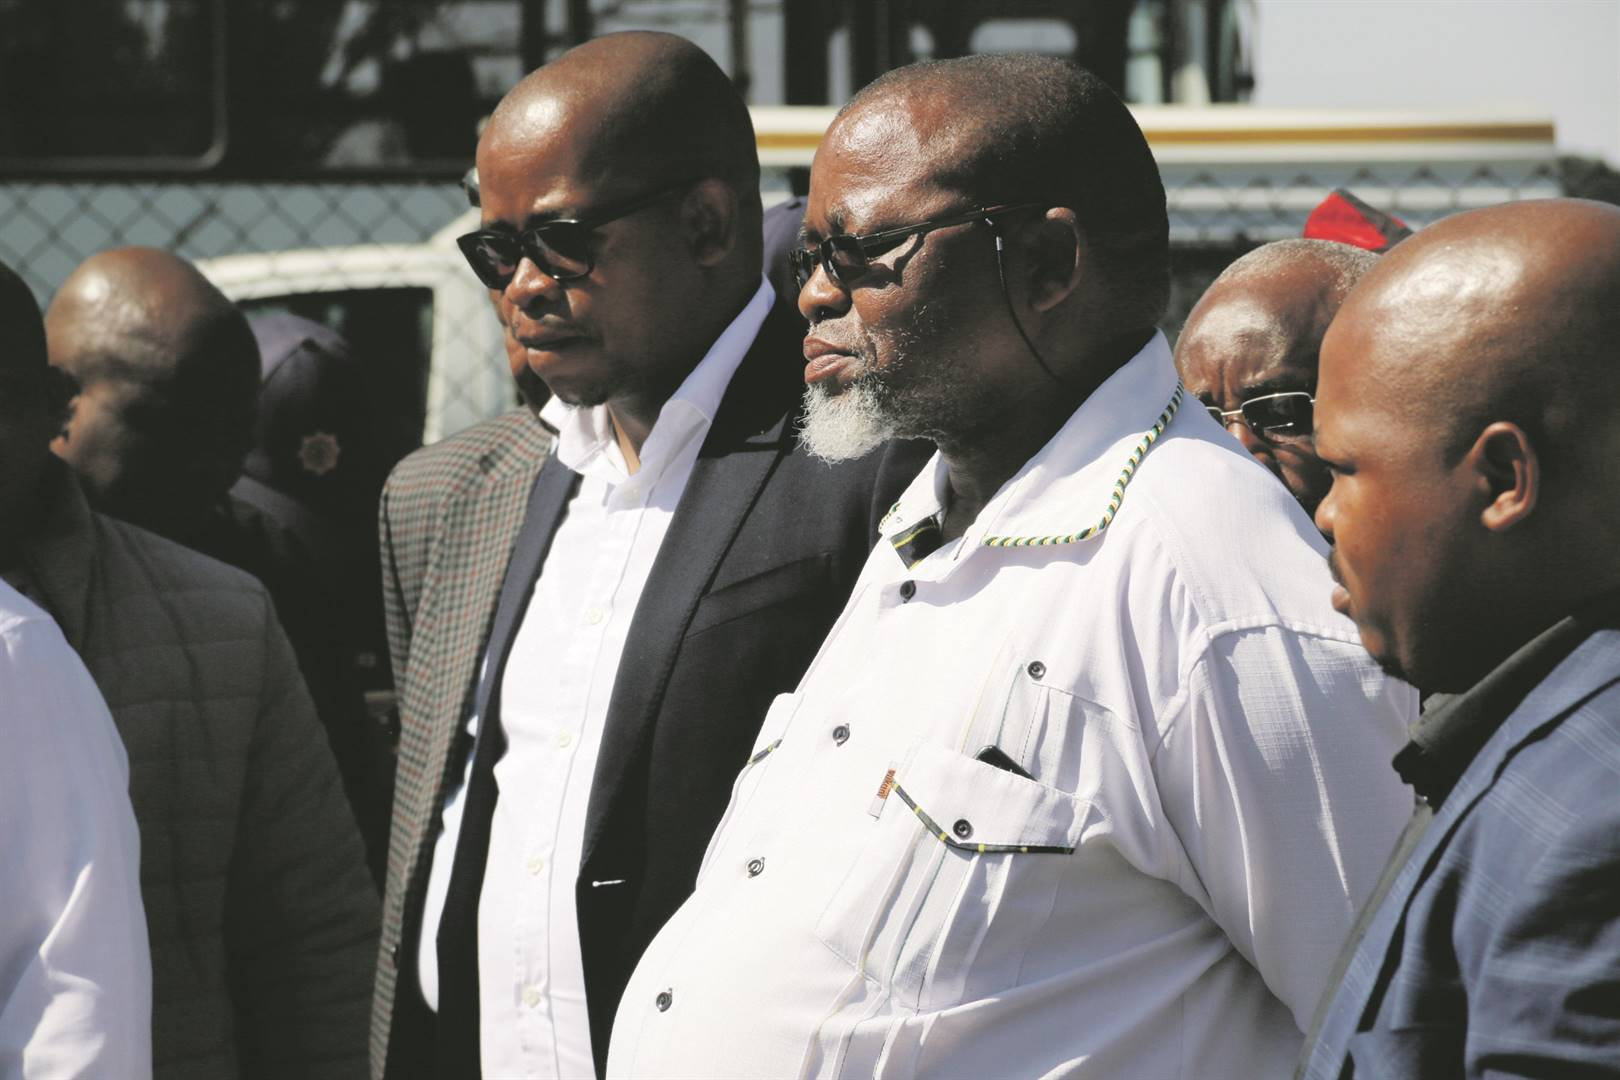 Mineral Resources Minister Gwede Mantashe, right, and the department's director-general, Thabo Mokoena, at Exxaro Arnot Colliery. Pictures: Ndileka Lujabe